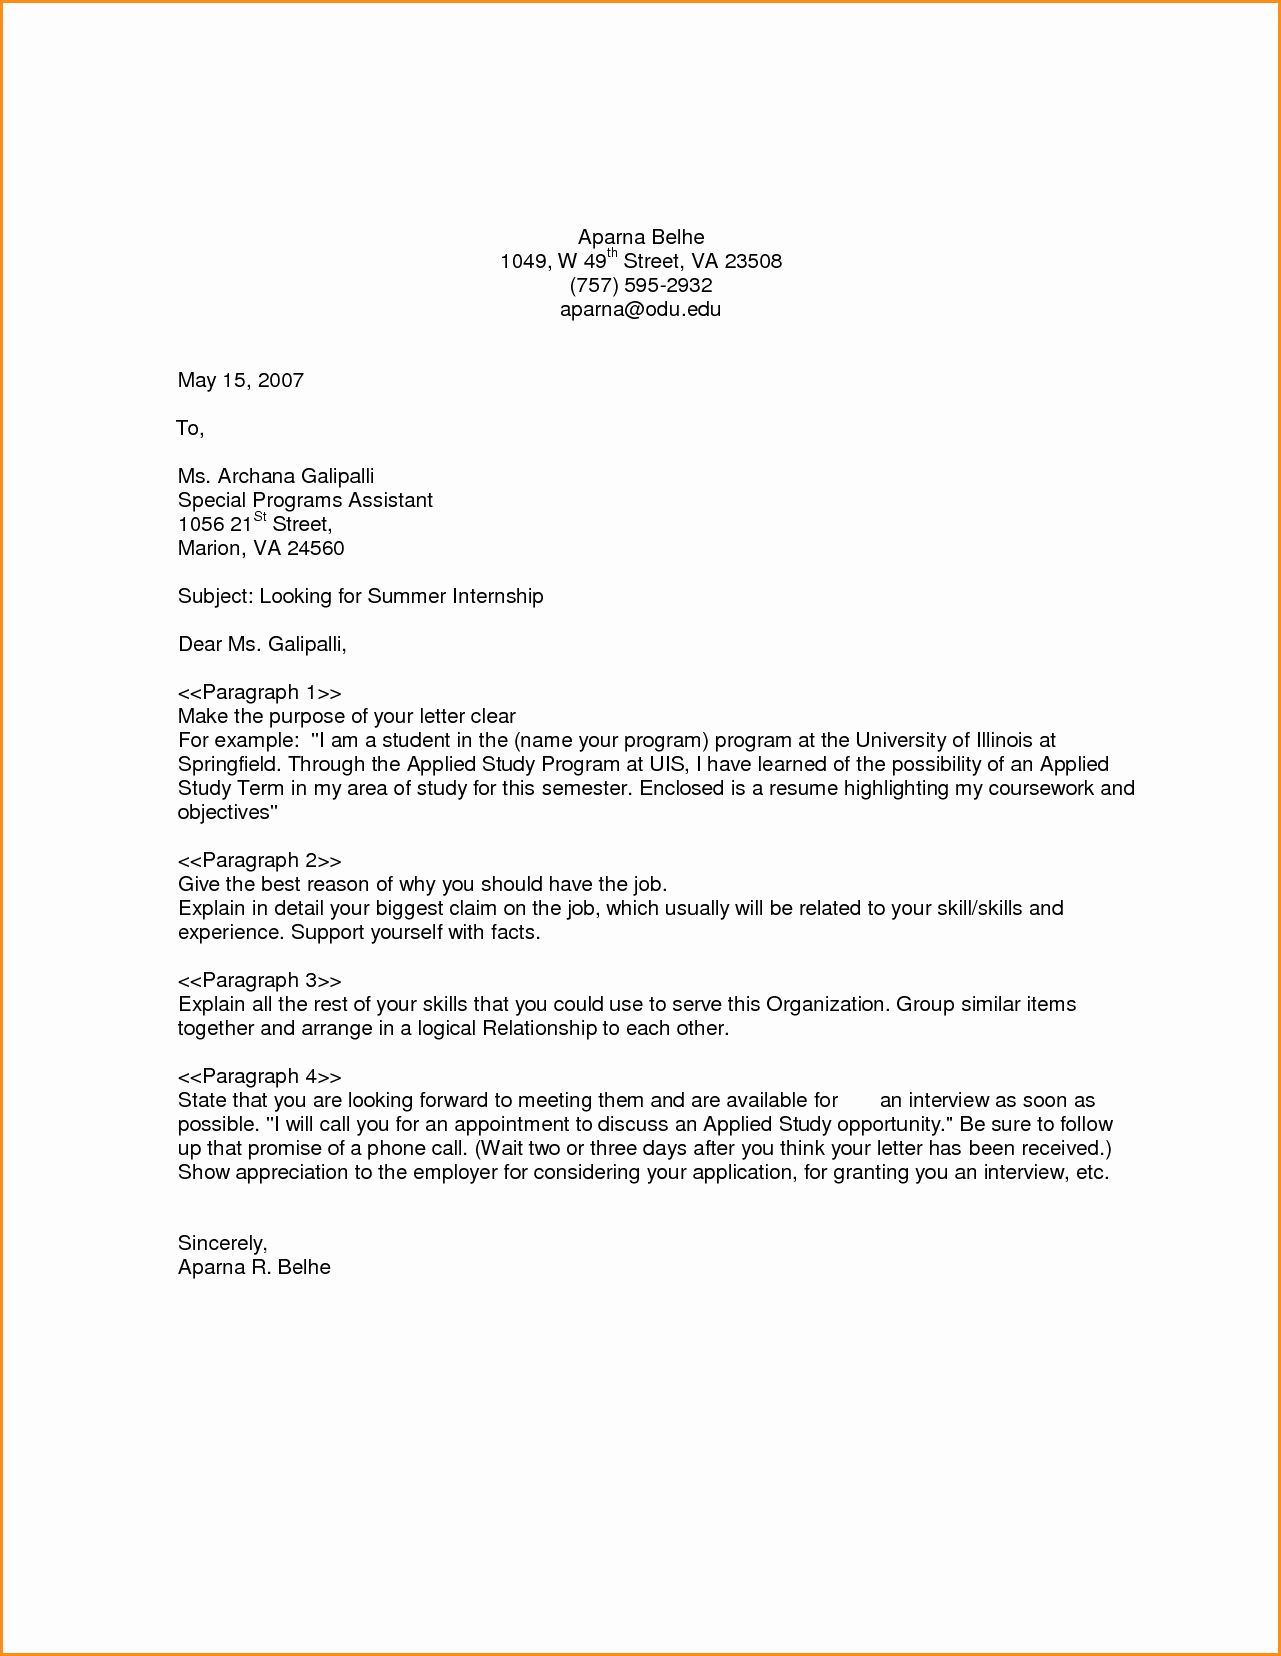 How to Cover Letter Template Lovely 7 Generic Cover Letter Example